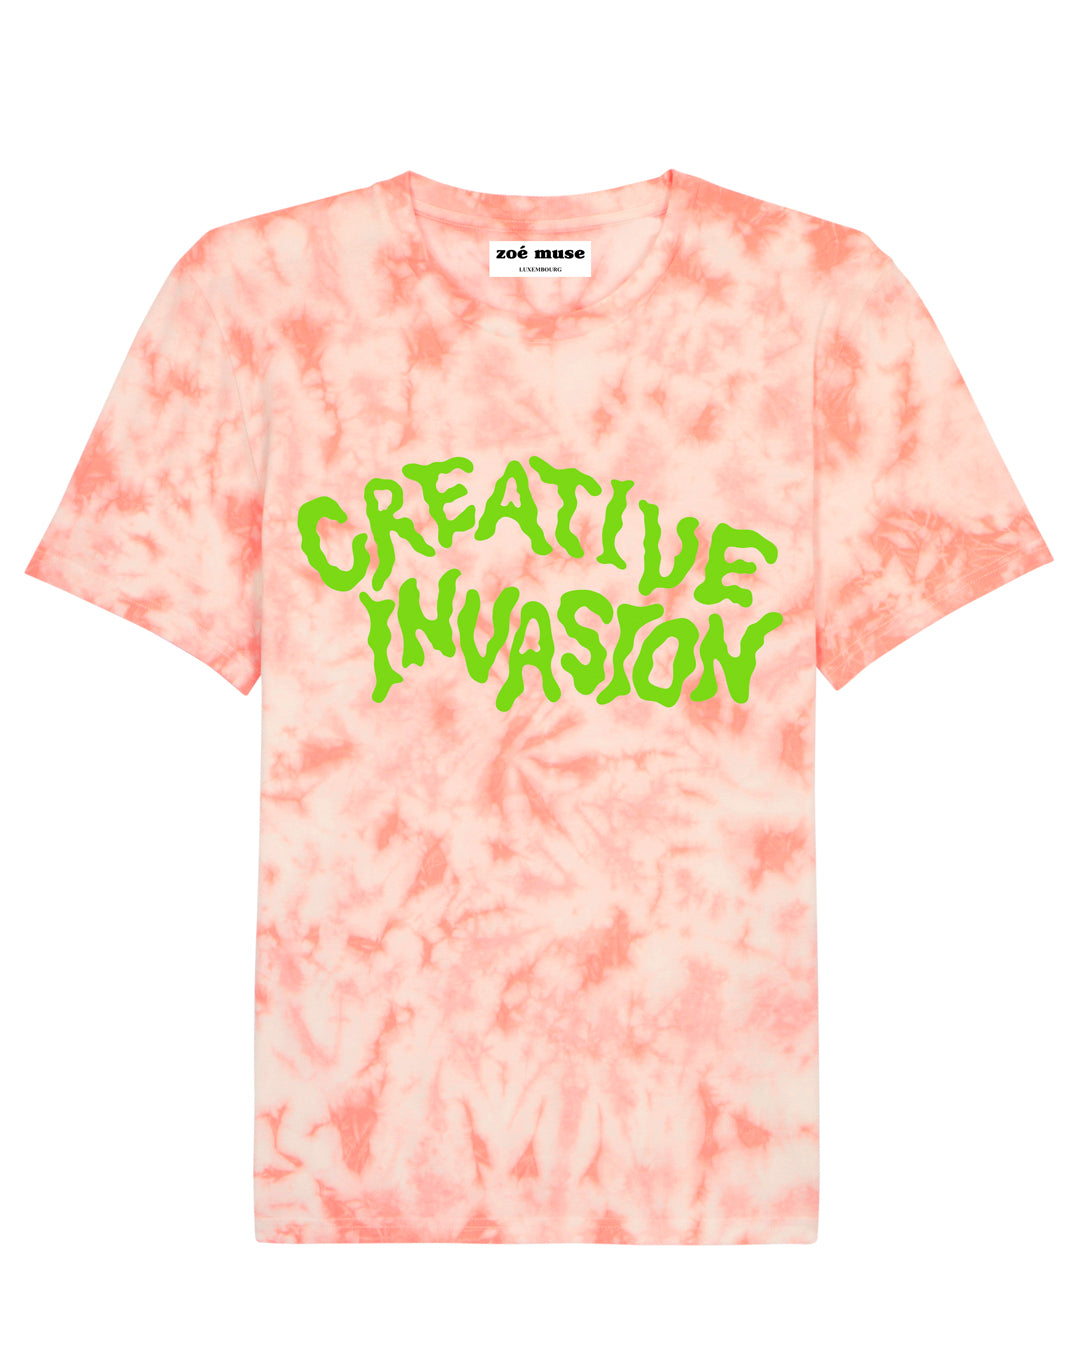 creative invasion_alien_sustainable_organic_fairwear_unisex_t-shirt_artist_collaboration_illustration_new collection_spring summer 2020